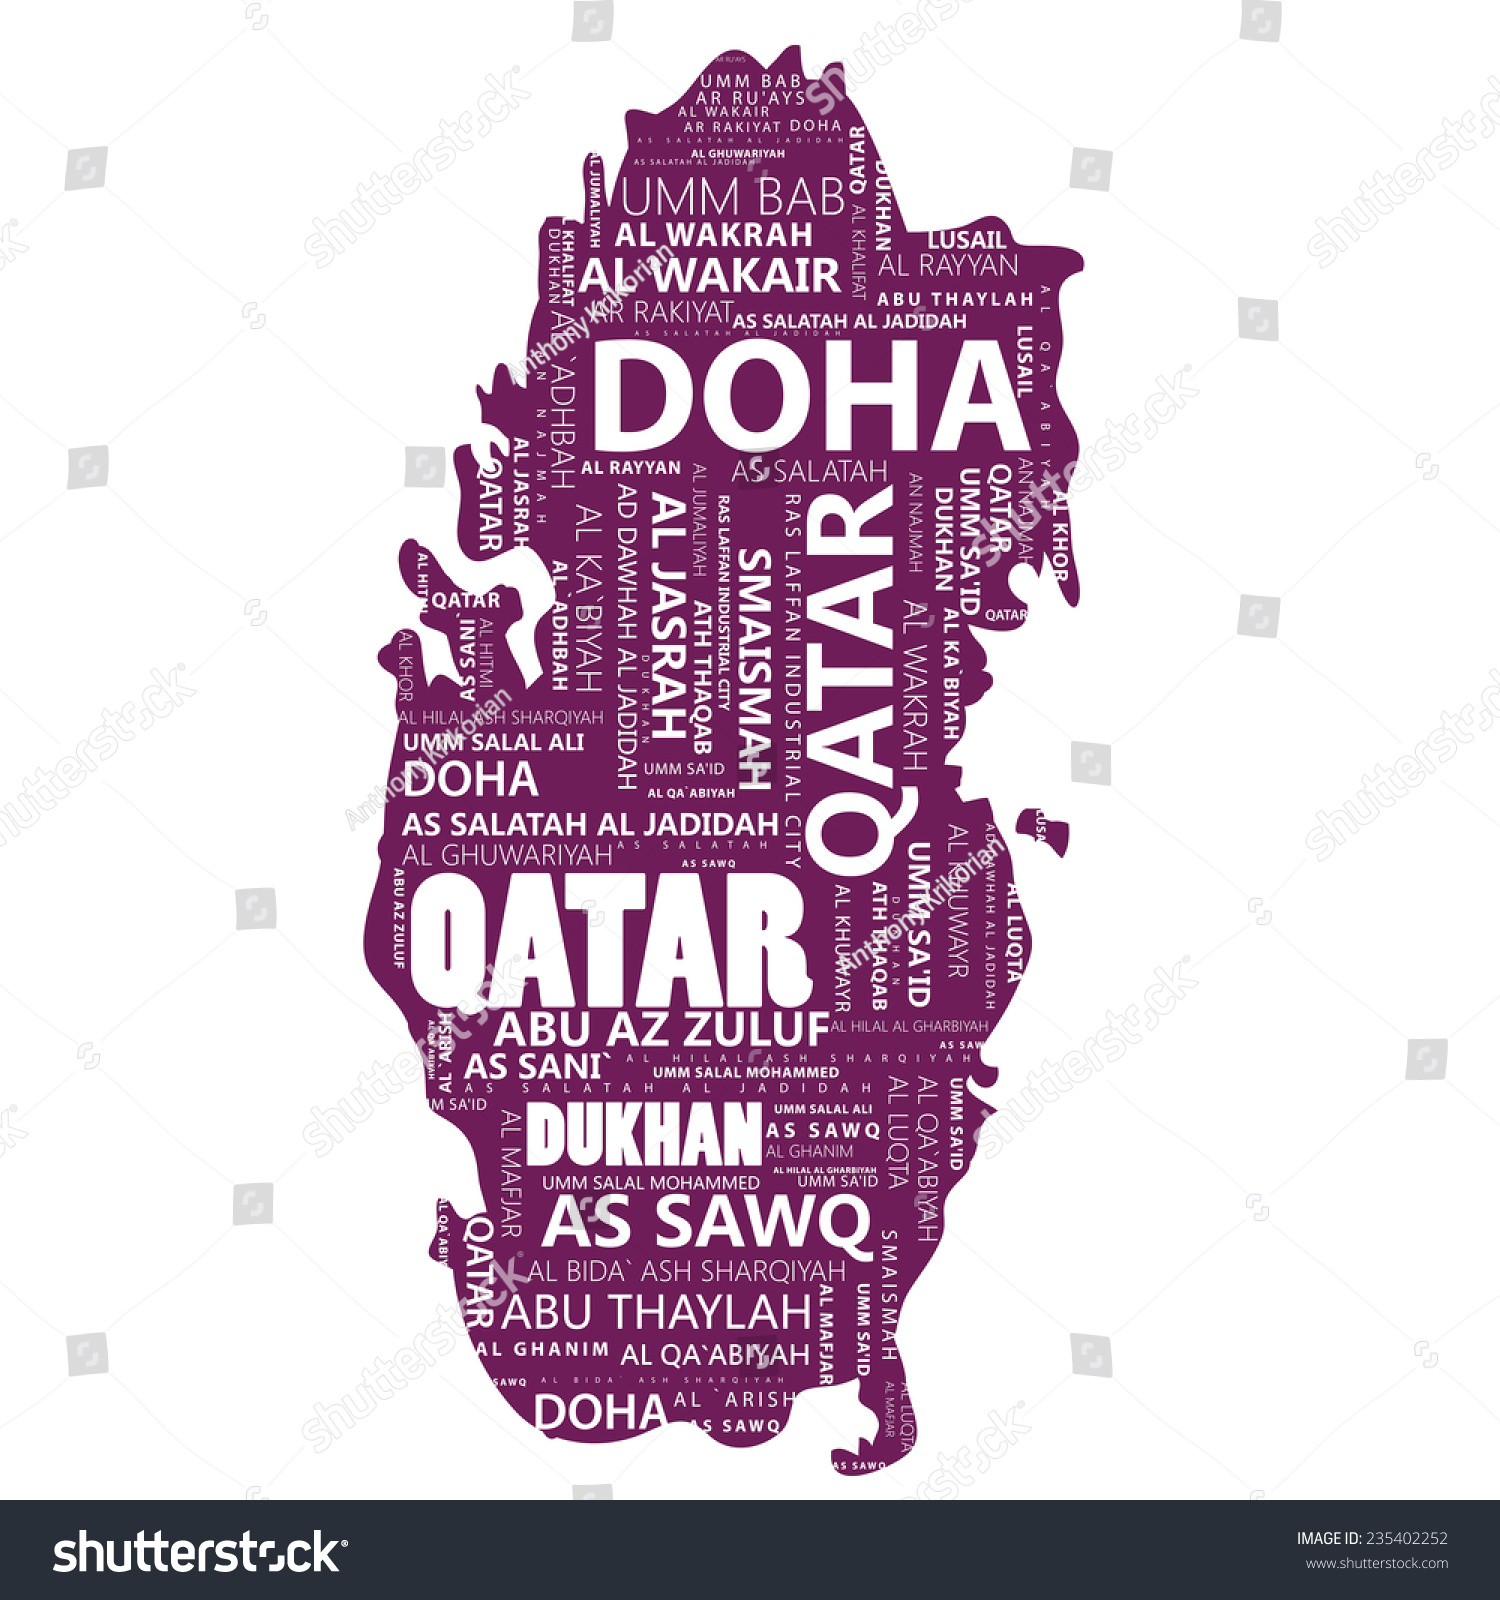 Qatar Map Some City Names Vector Stock Image | Download Now